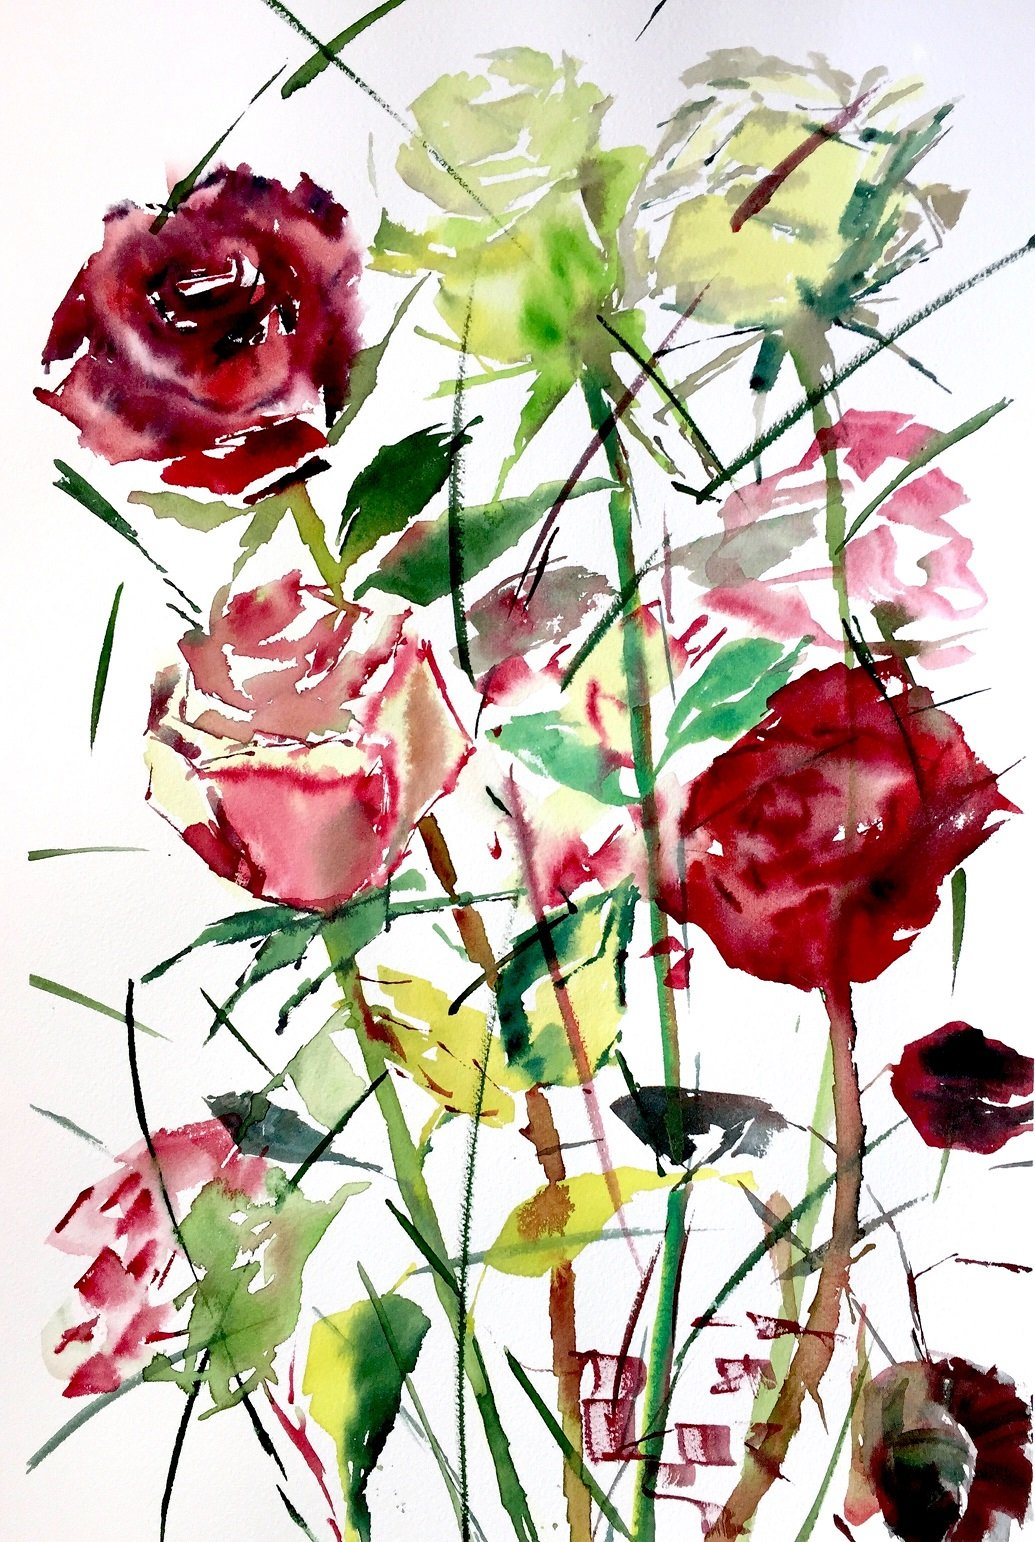 Winter Roses 4 Water colour 56 x 31 cm 300gms Arches